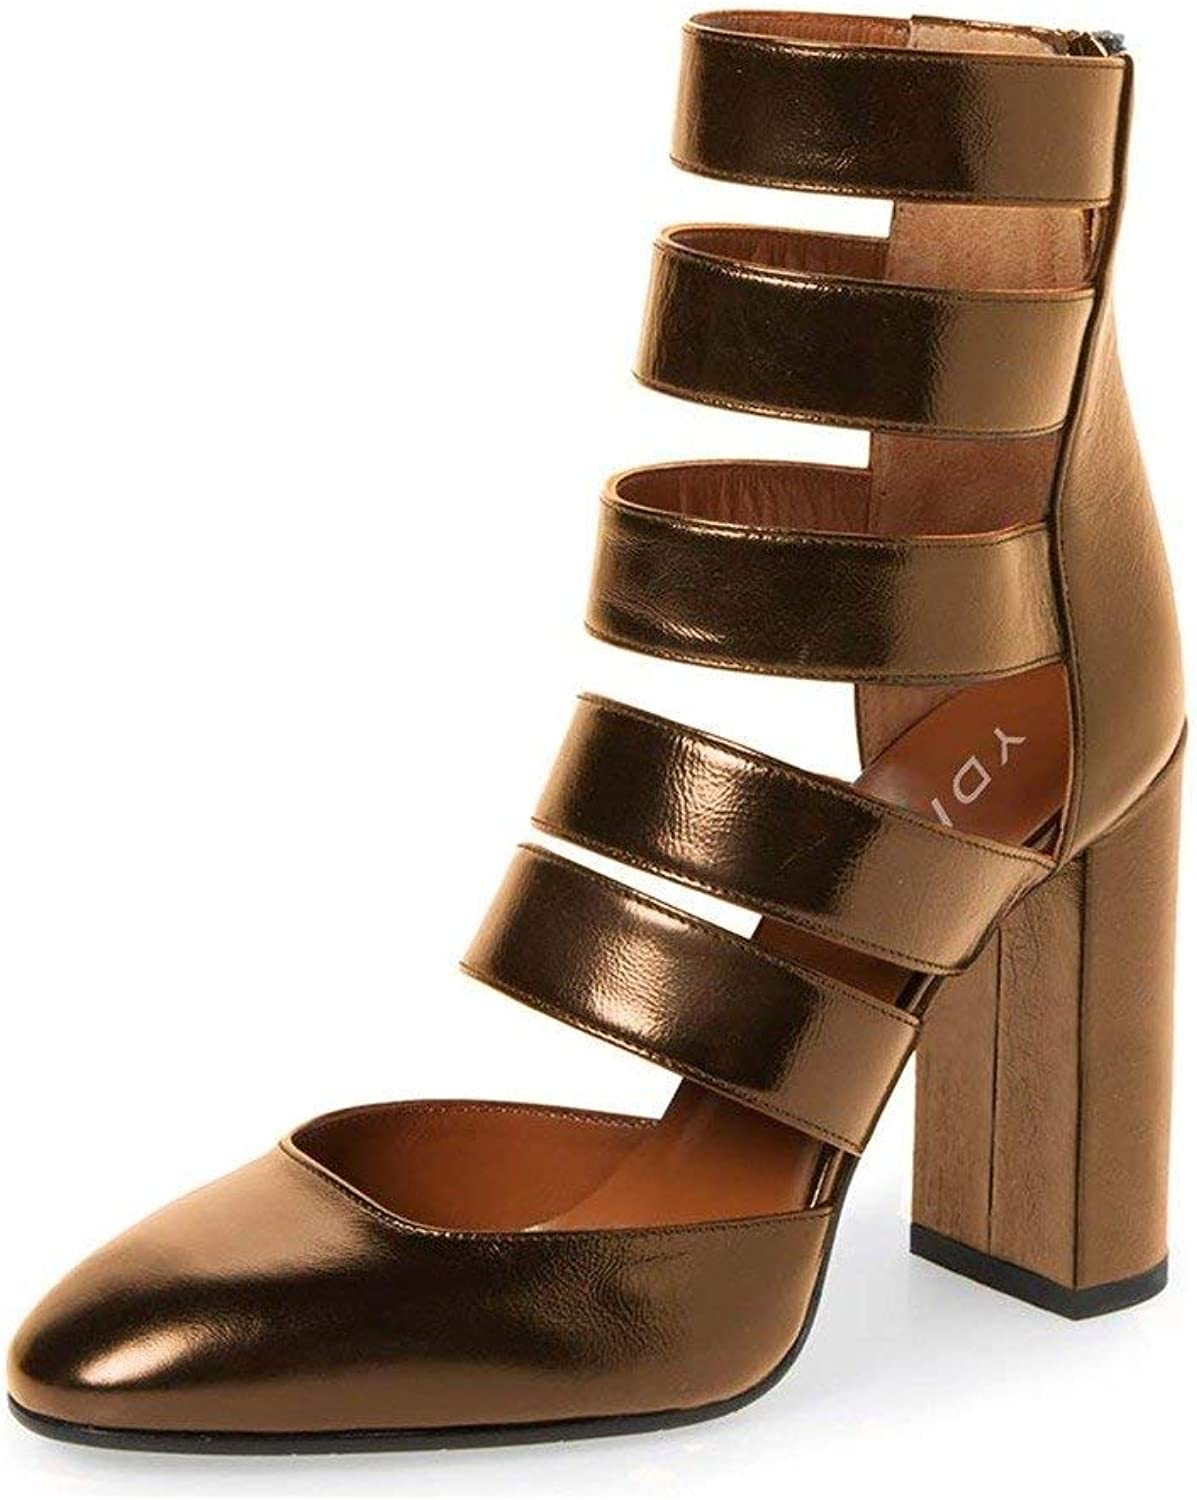 YDN Women Gladiator Strappy Sandals Block High Heel Round Toe Hollow Out Pumps with Zipper